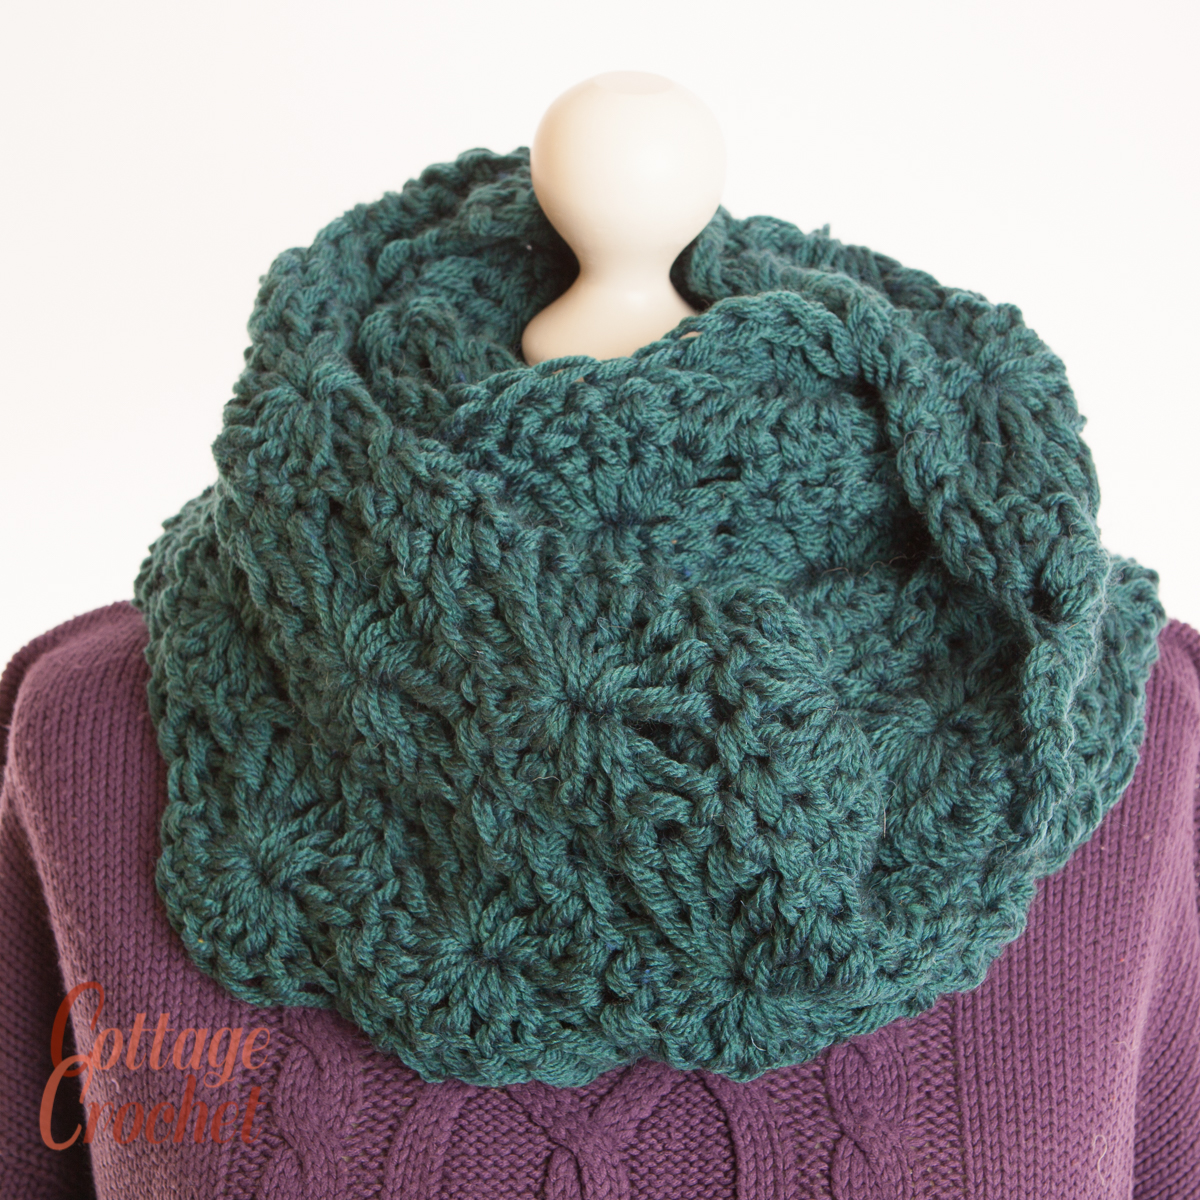 07793062d06 Dark Green Mobius Cowl, unisex turquoise infinity scarf or shawl ...